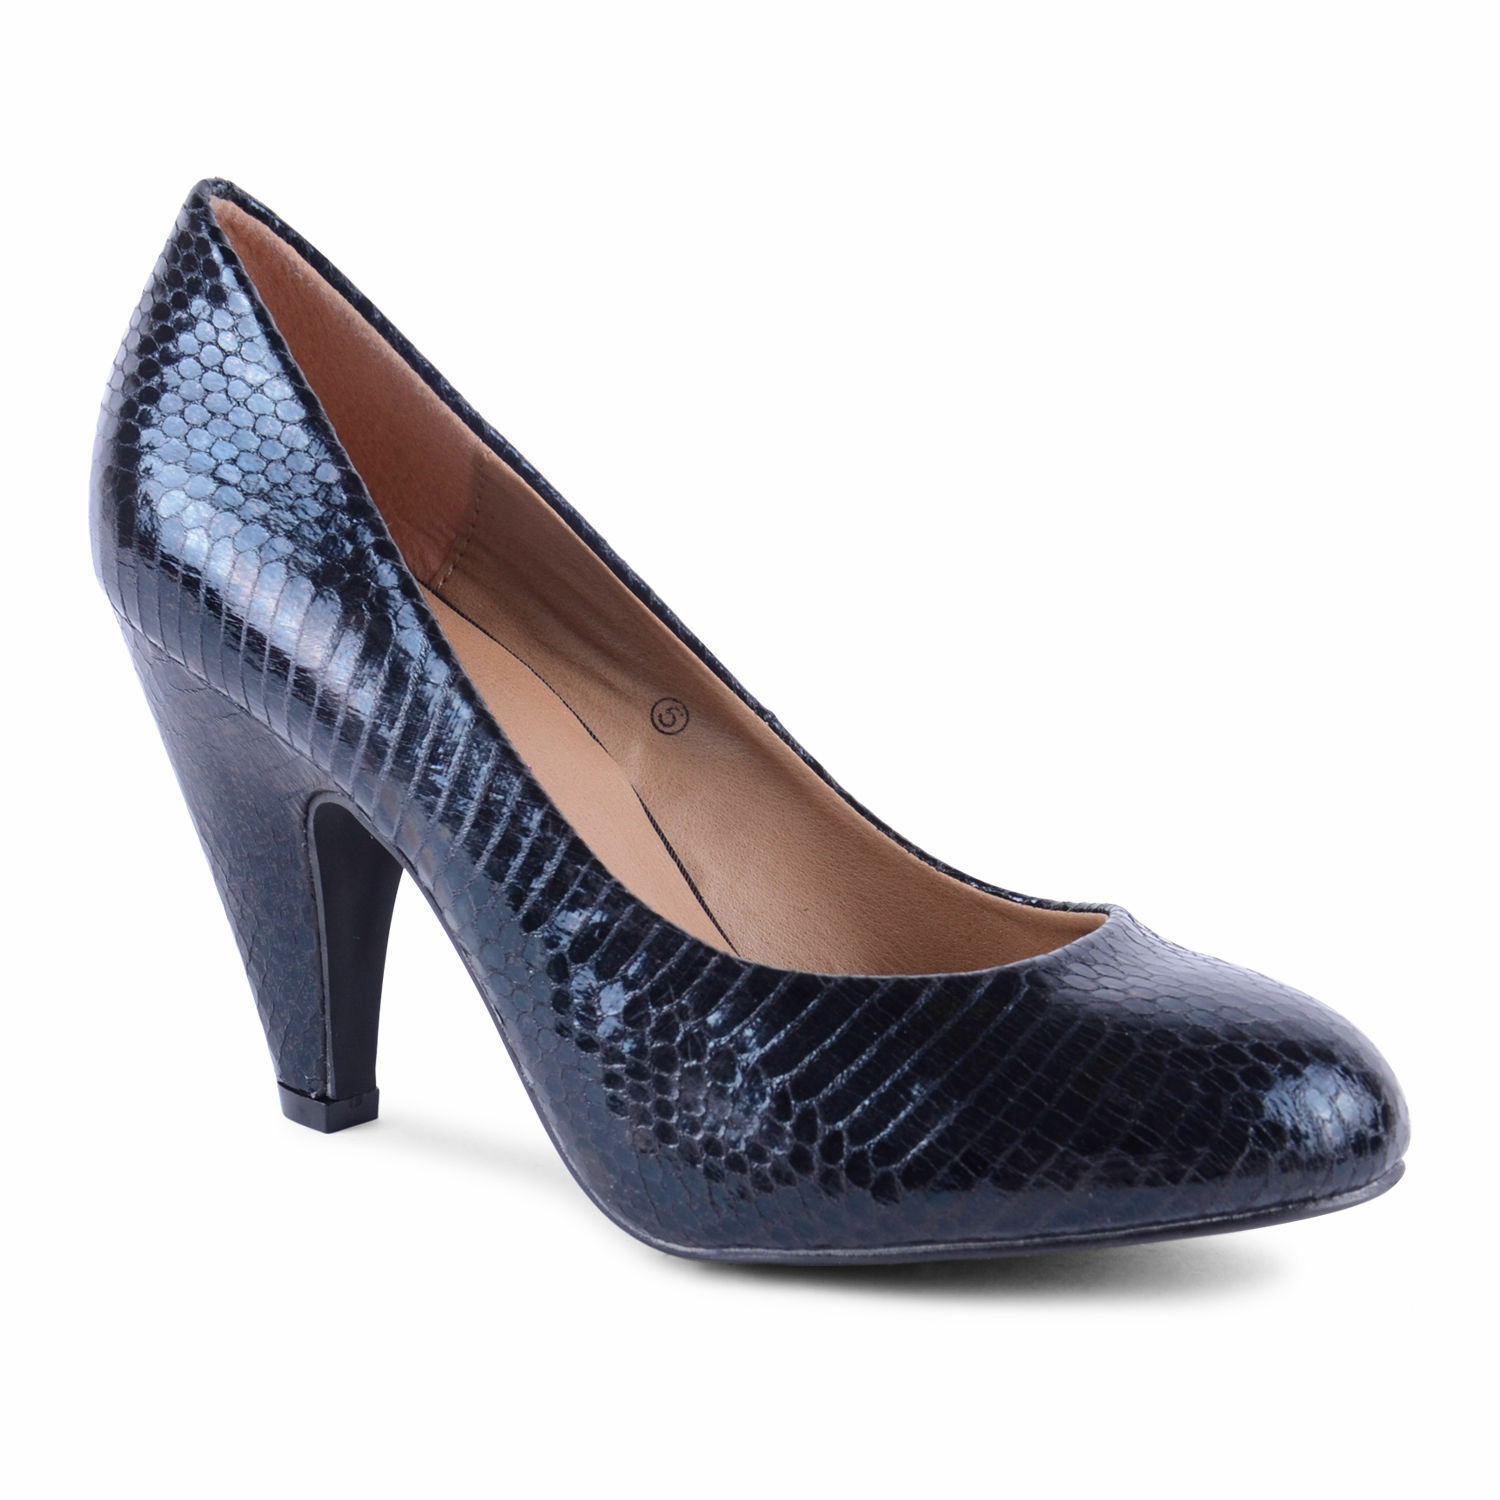 WOMENS LADIES MID HEEL_BLACK COURT SHOES-FAUX SNAKE SKIN_DOLCIS SIZE 3-xmas gift